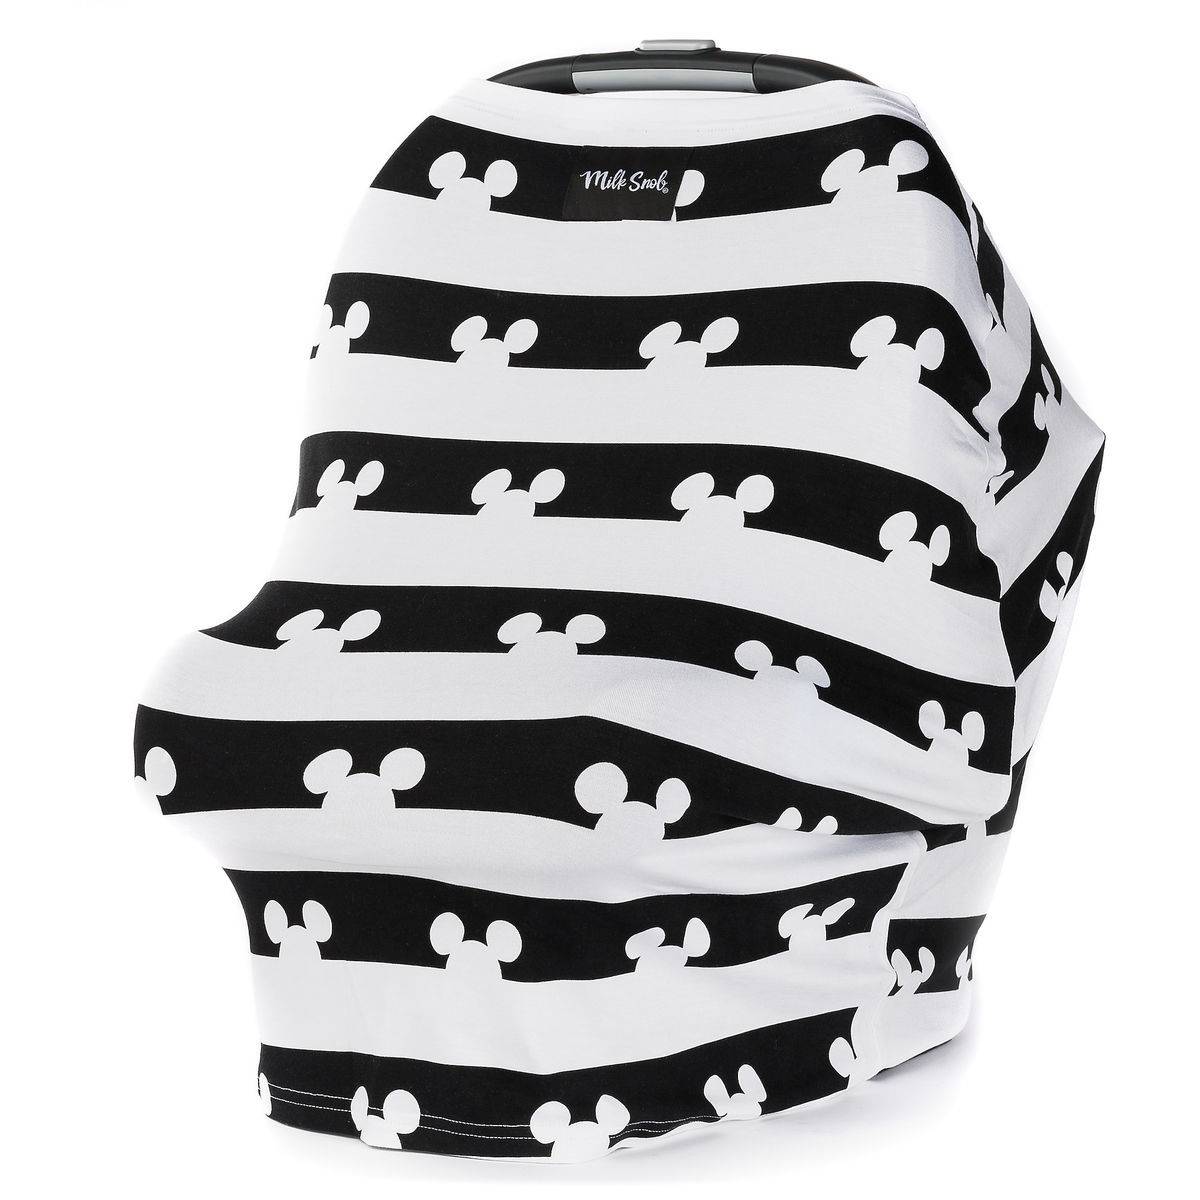 Product Image Of Mickey Mouse Baby Seat Cover By Milk Snob 1